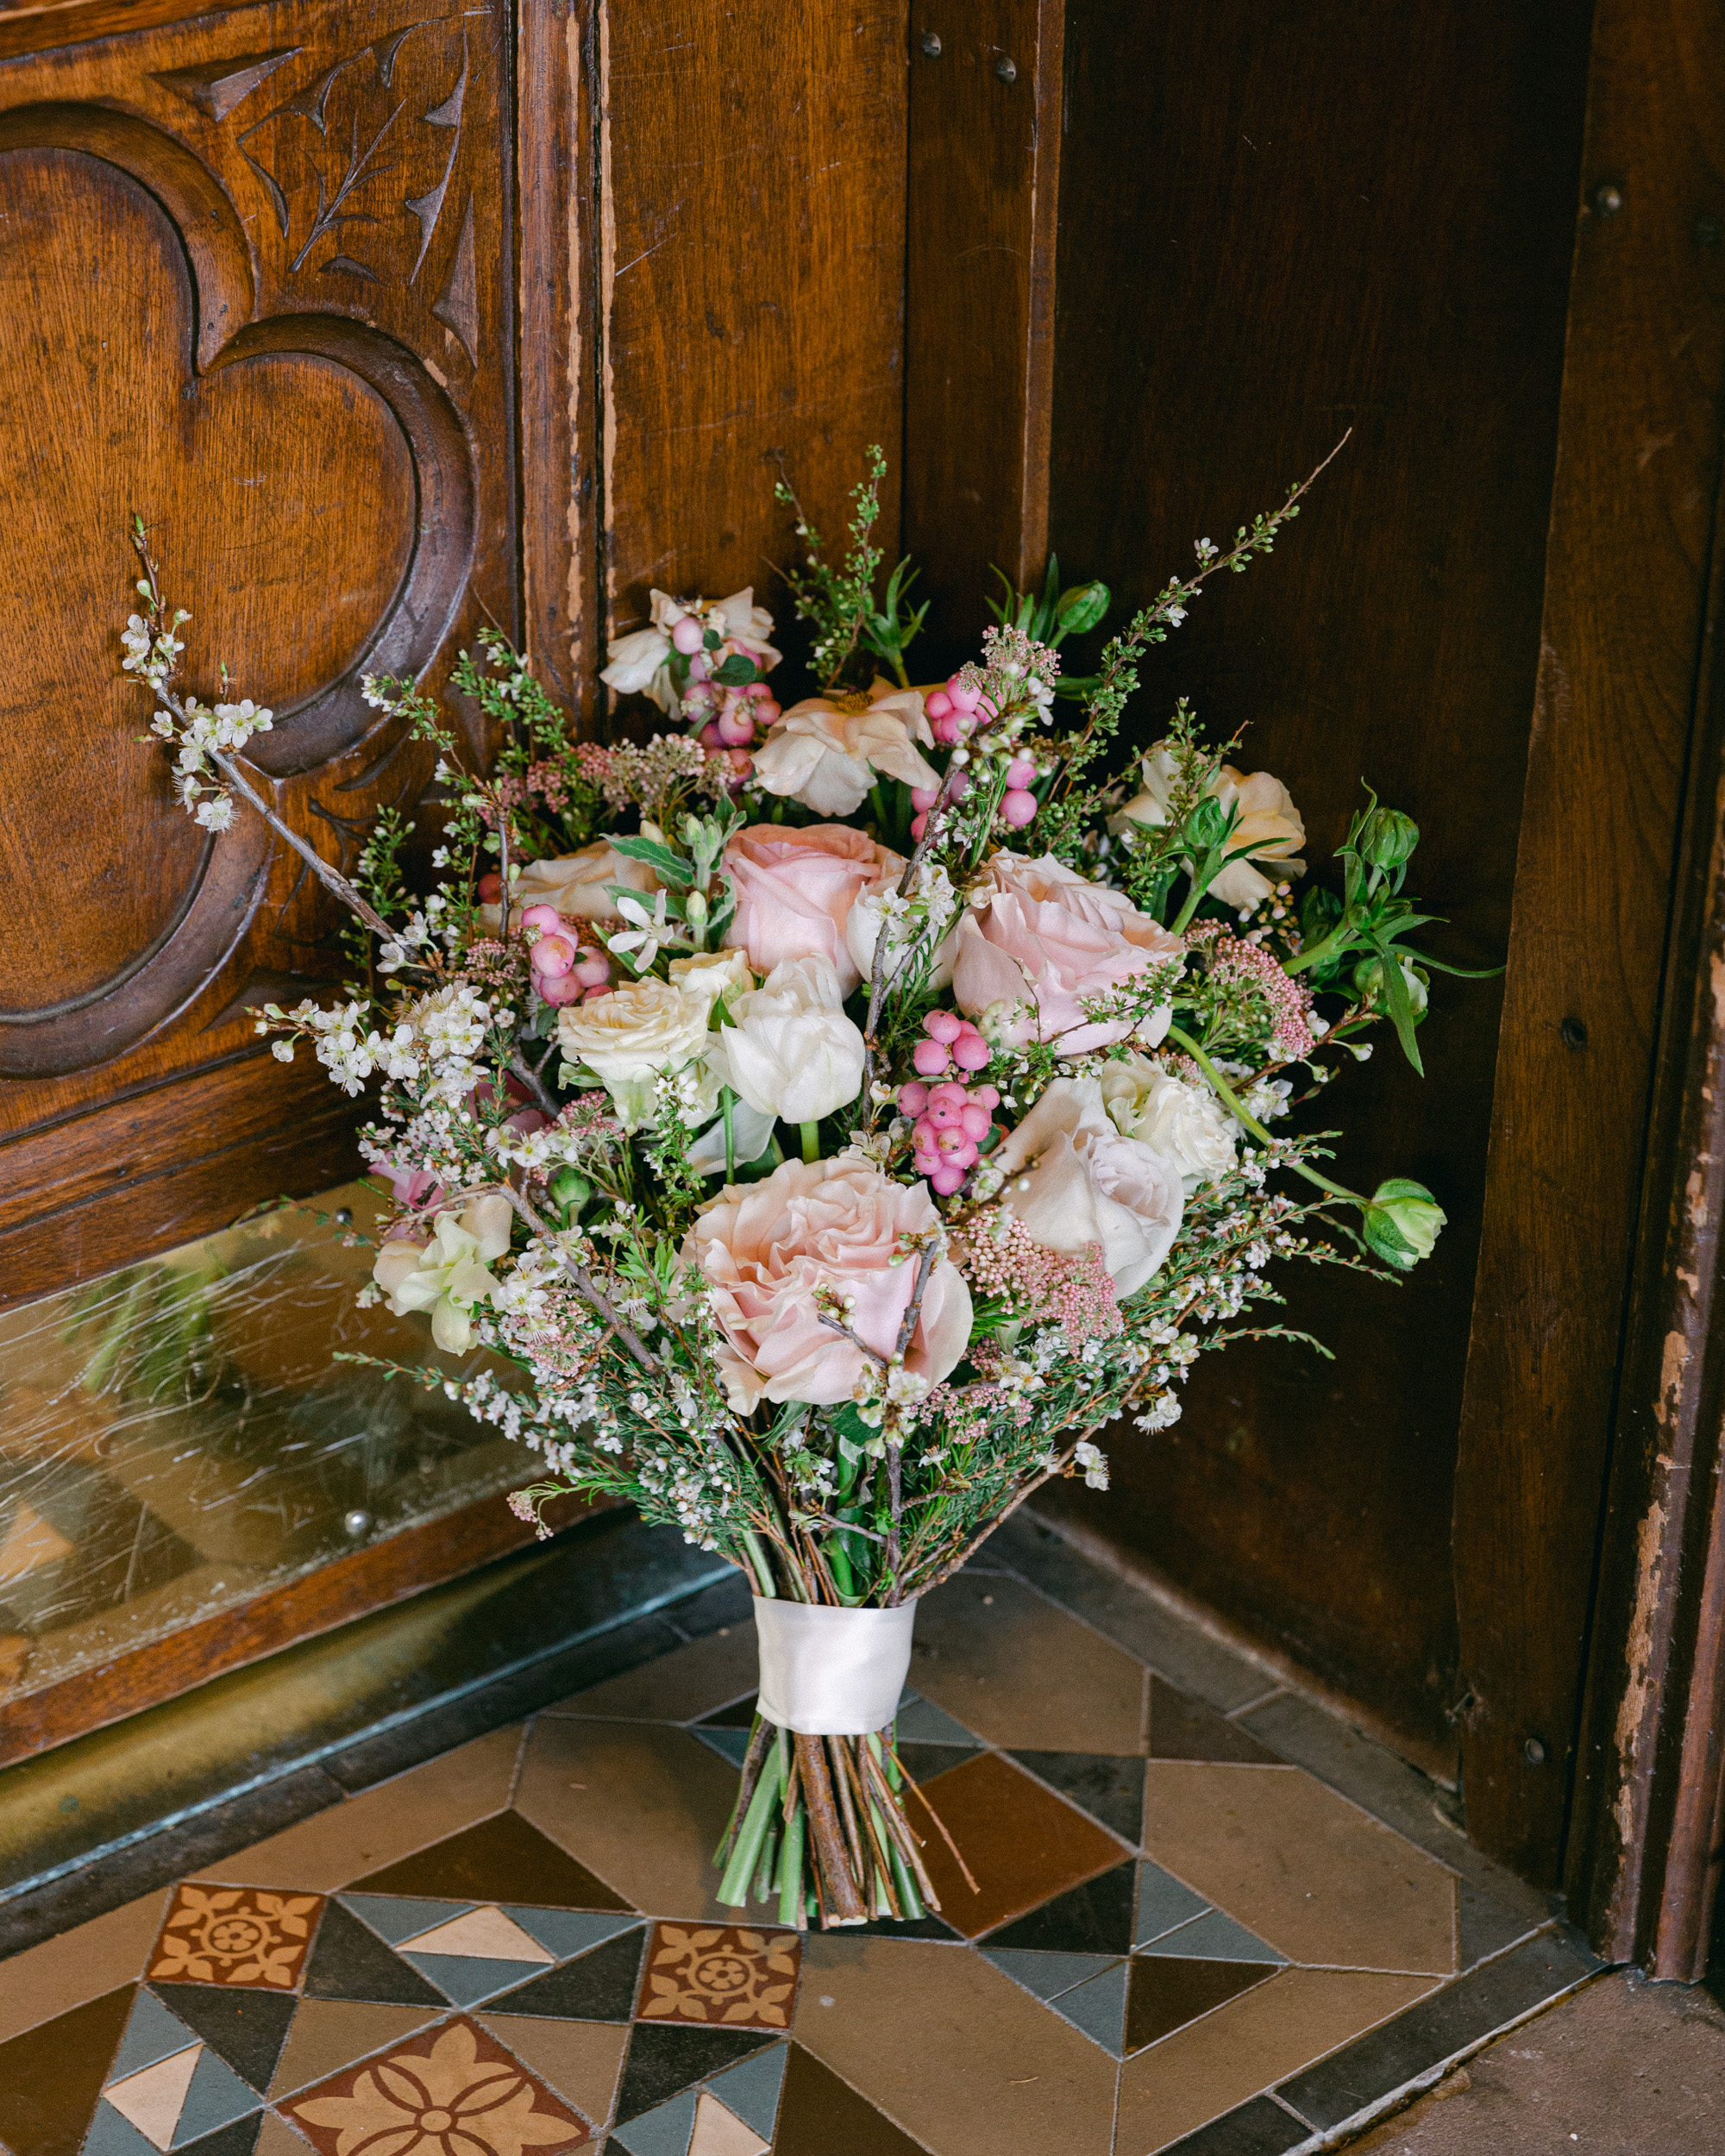 Lush spring bridal bouquet next to an ornate historic door on a richly tiled entryway at the Sayre Mansion in Bethlehem, PA by Laura Billingham Photography